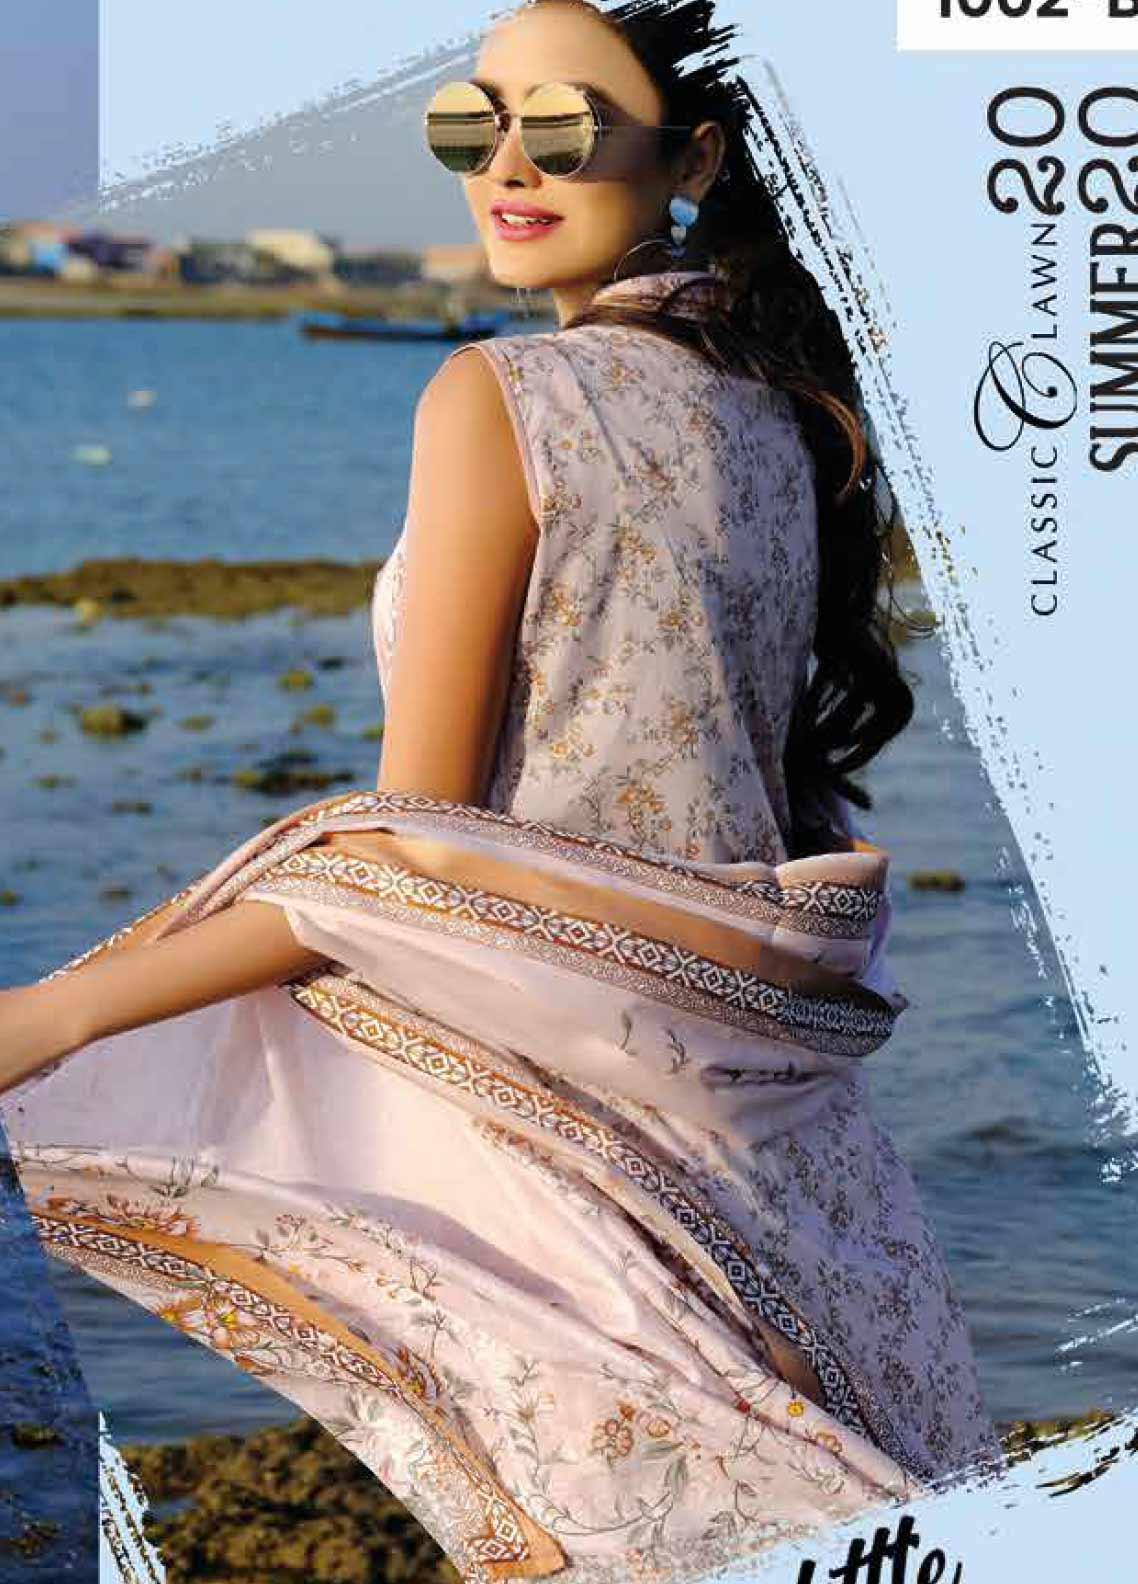 Five Star Printed Lawn Unstitched 3 Piece Suit FS20C 1002B - Spring / Summer Collection